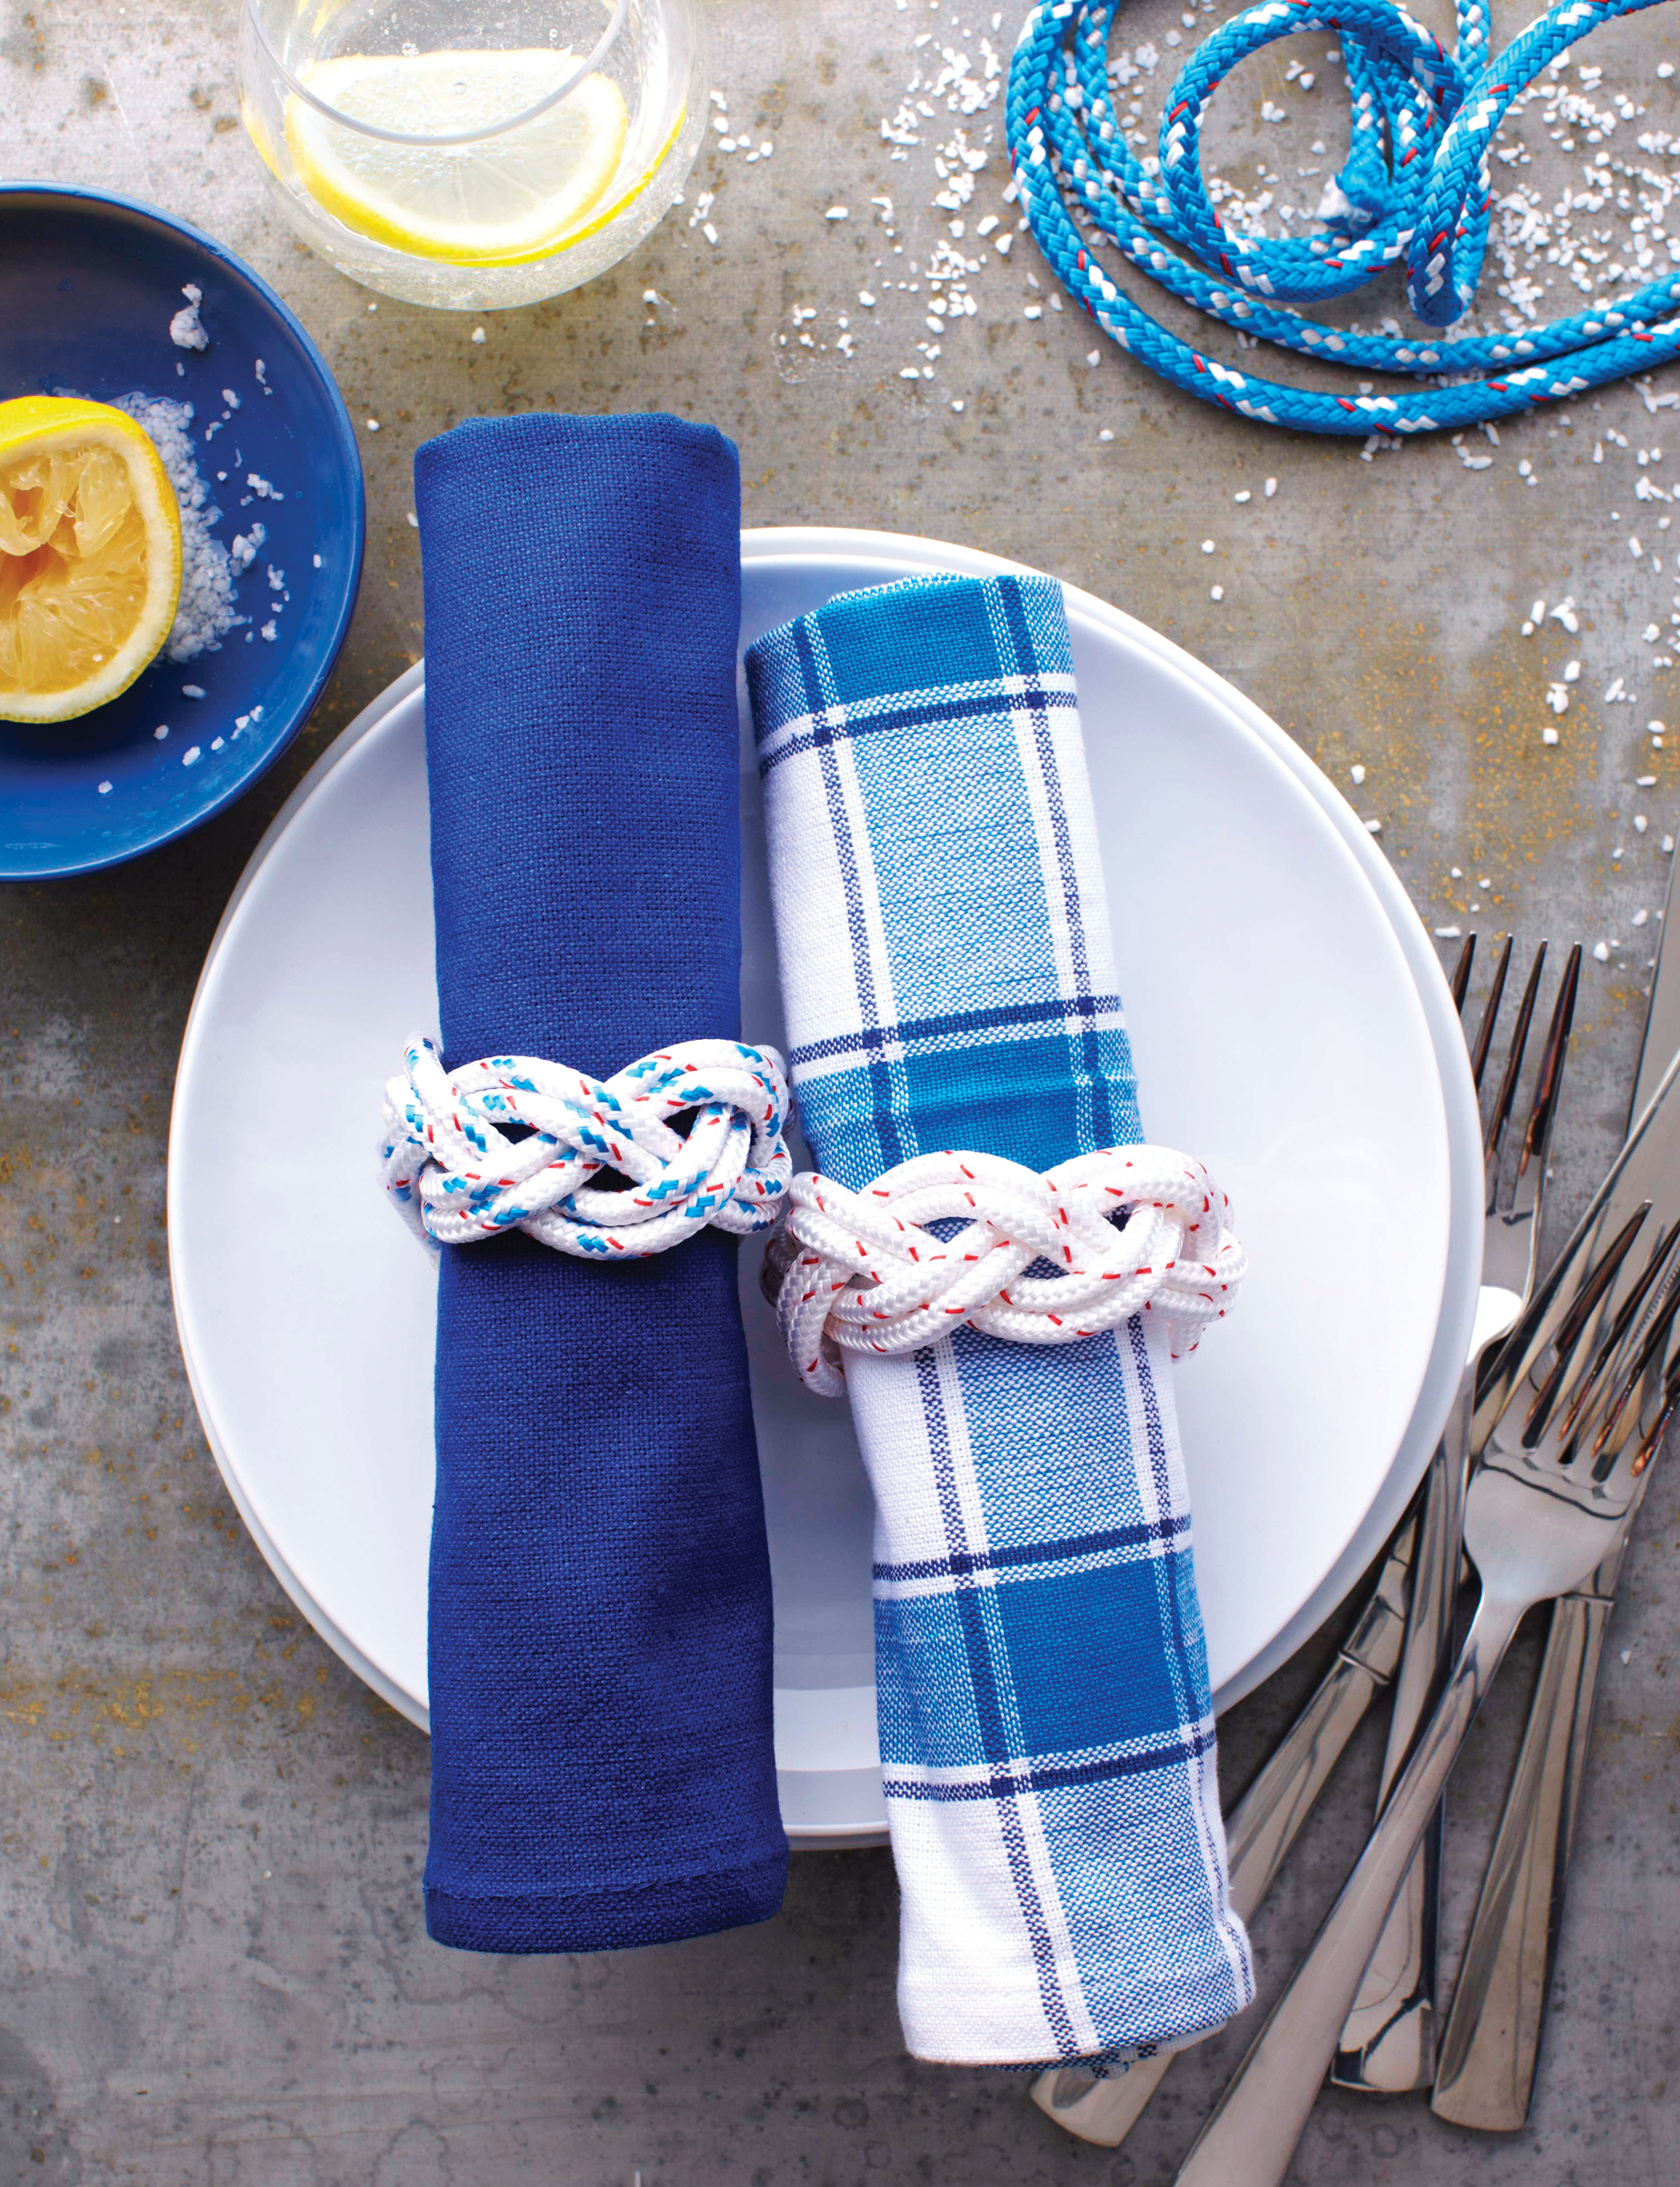 Place setting with blue and white napkins and plates